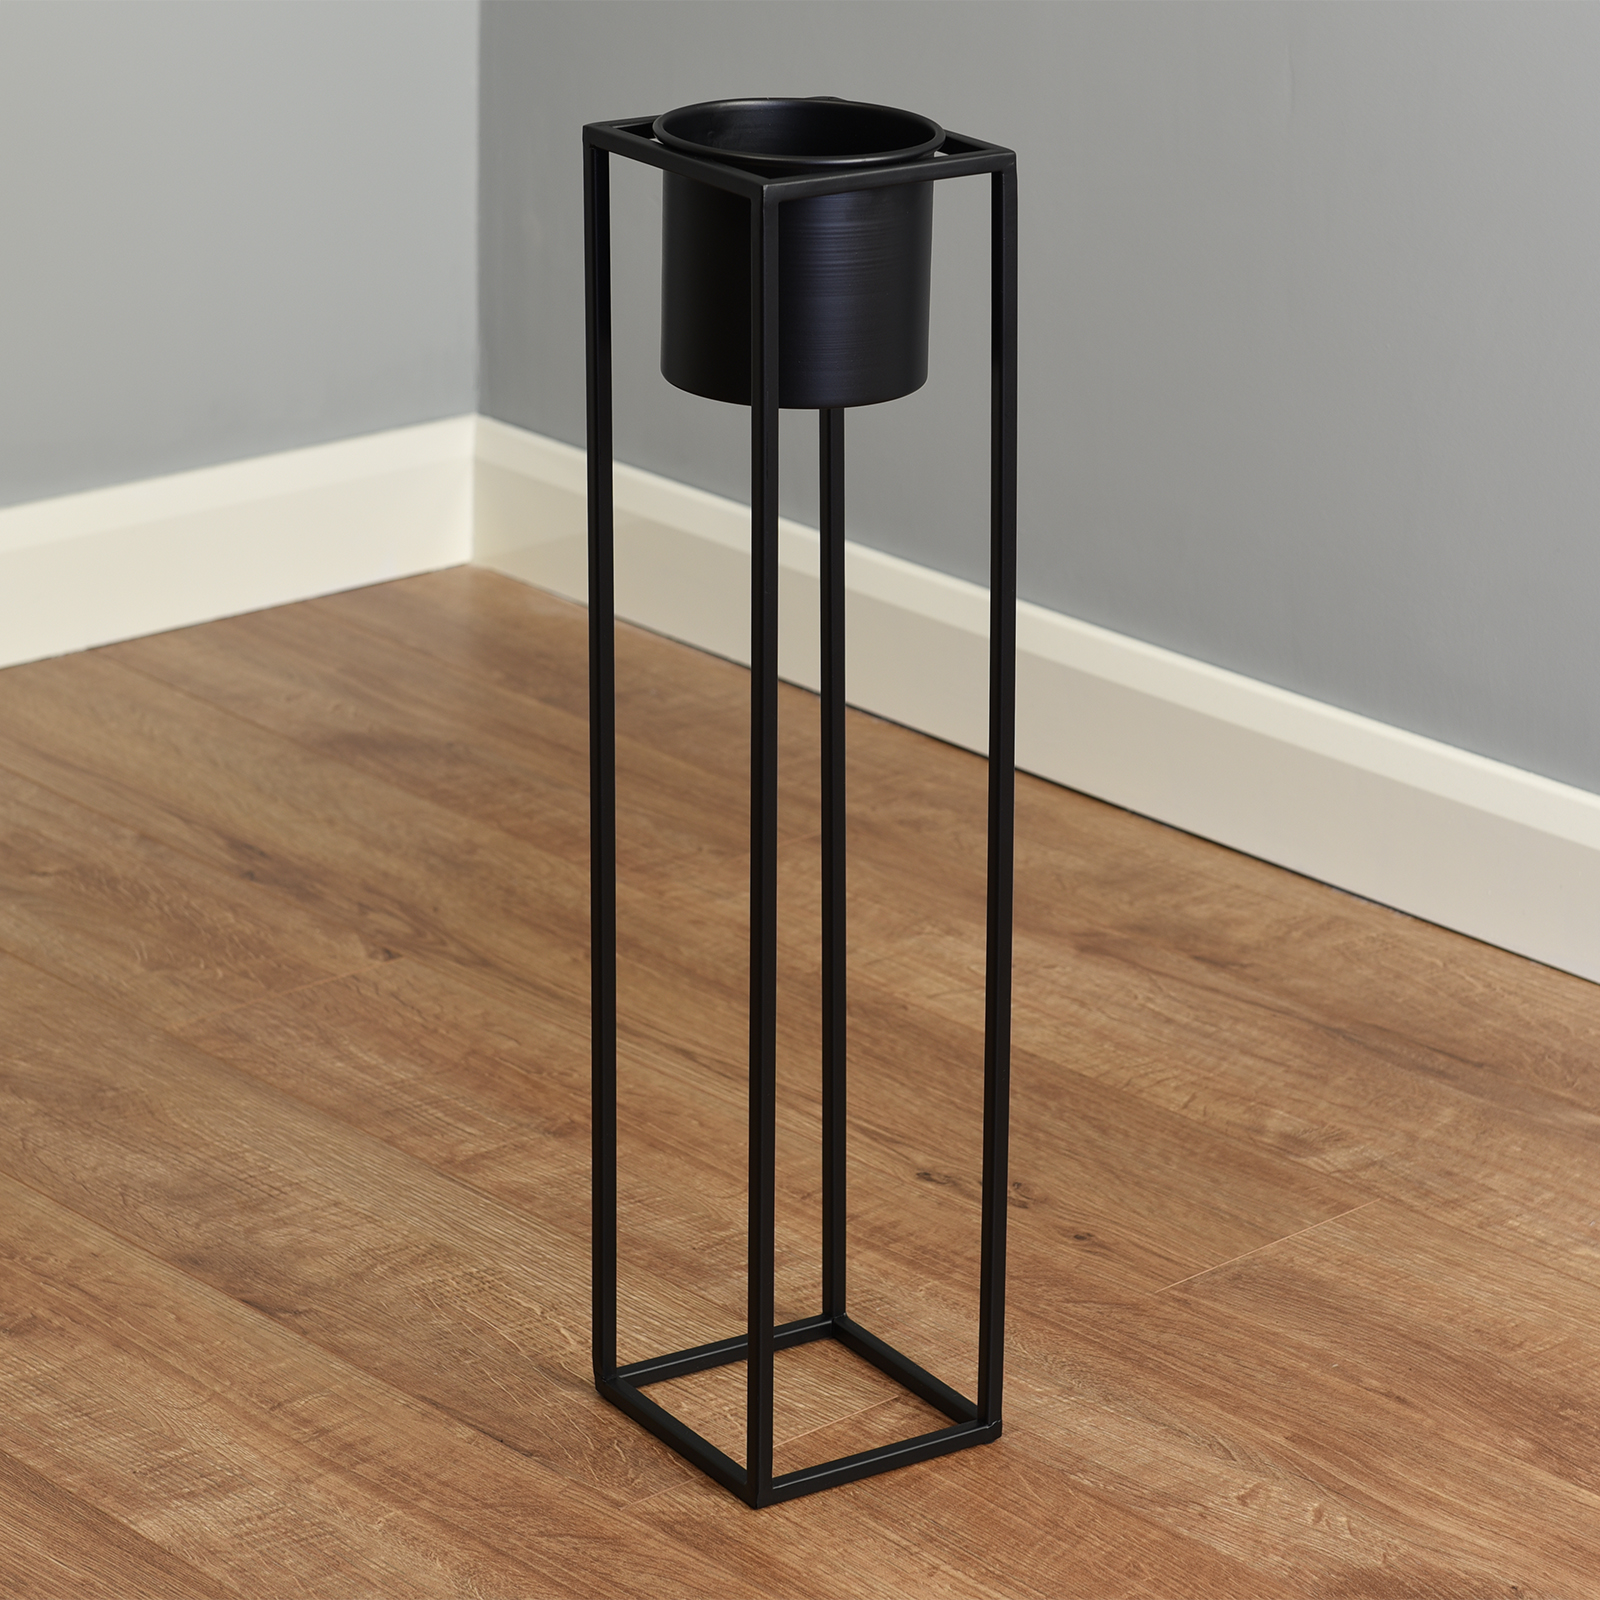 Hartleys-Small-Round-Freestanding-Black-Metal-Plant-Pot-Tall-Square-Floor-Stand thumbnail 19